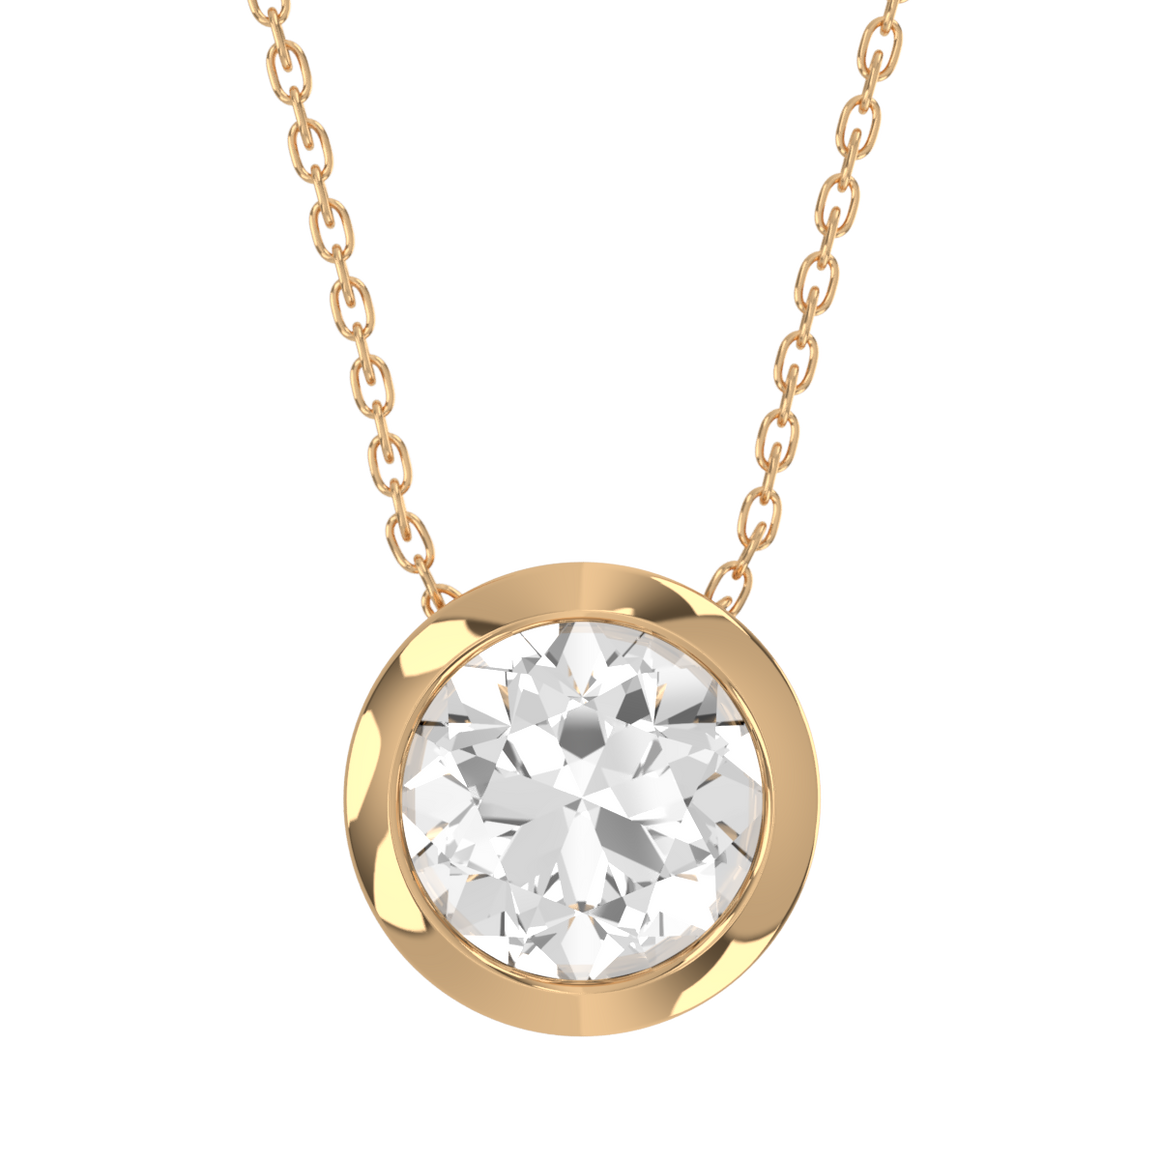 14ct Diamond Bezel Set Necklace